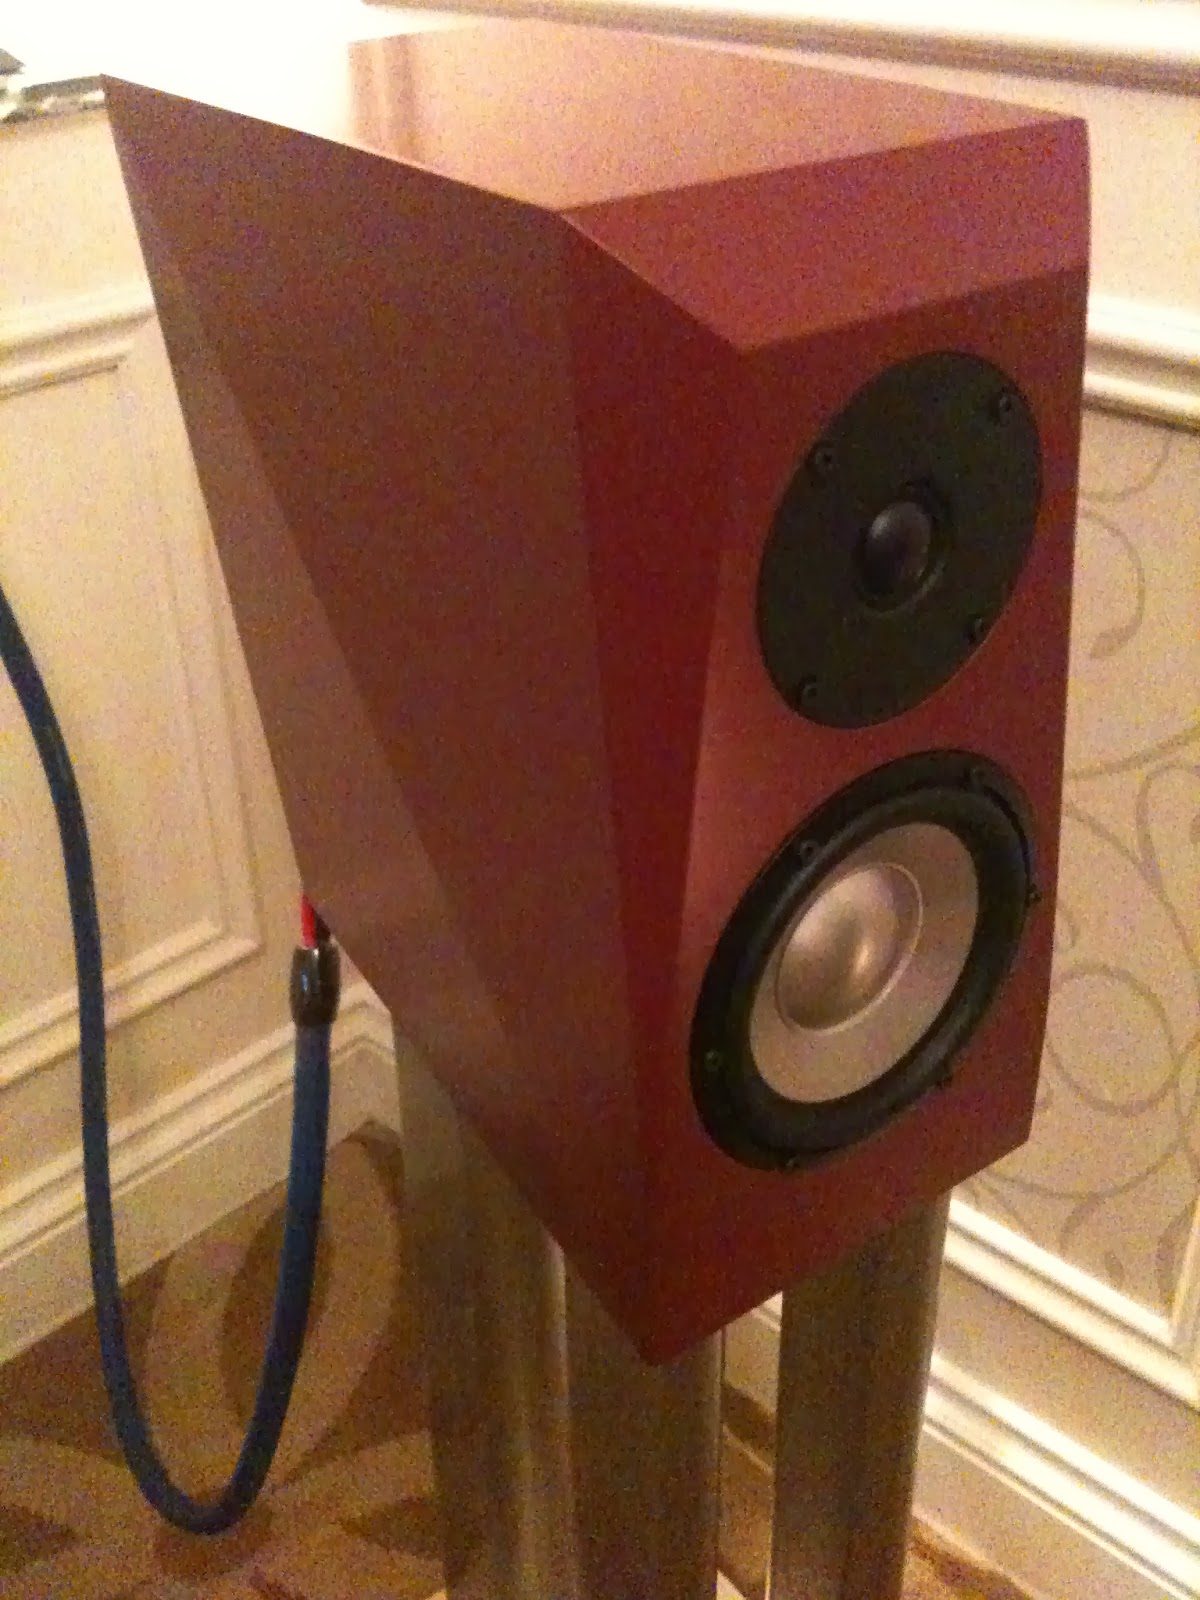 The vinyl anachronist joseph audios new speakers at the 2014 ces its no secret that jeff joseph has discovered how to get a small speaker to sound like a really big speaker have you heard the joseph audio pulsar sciox Image collections